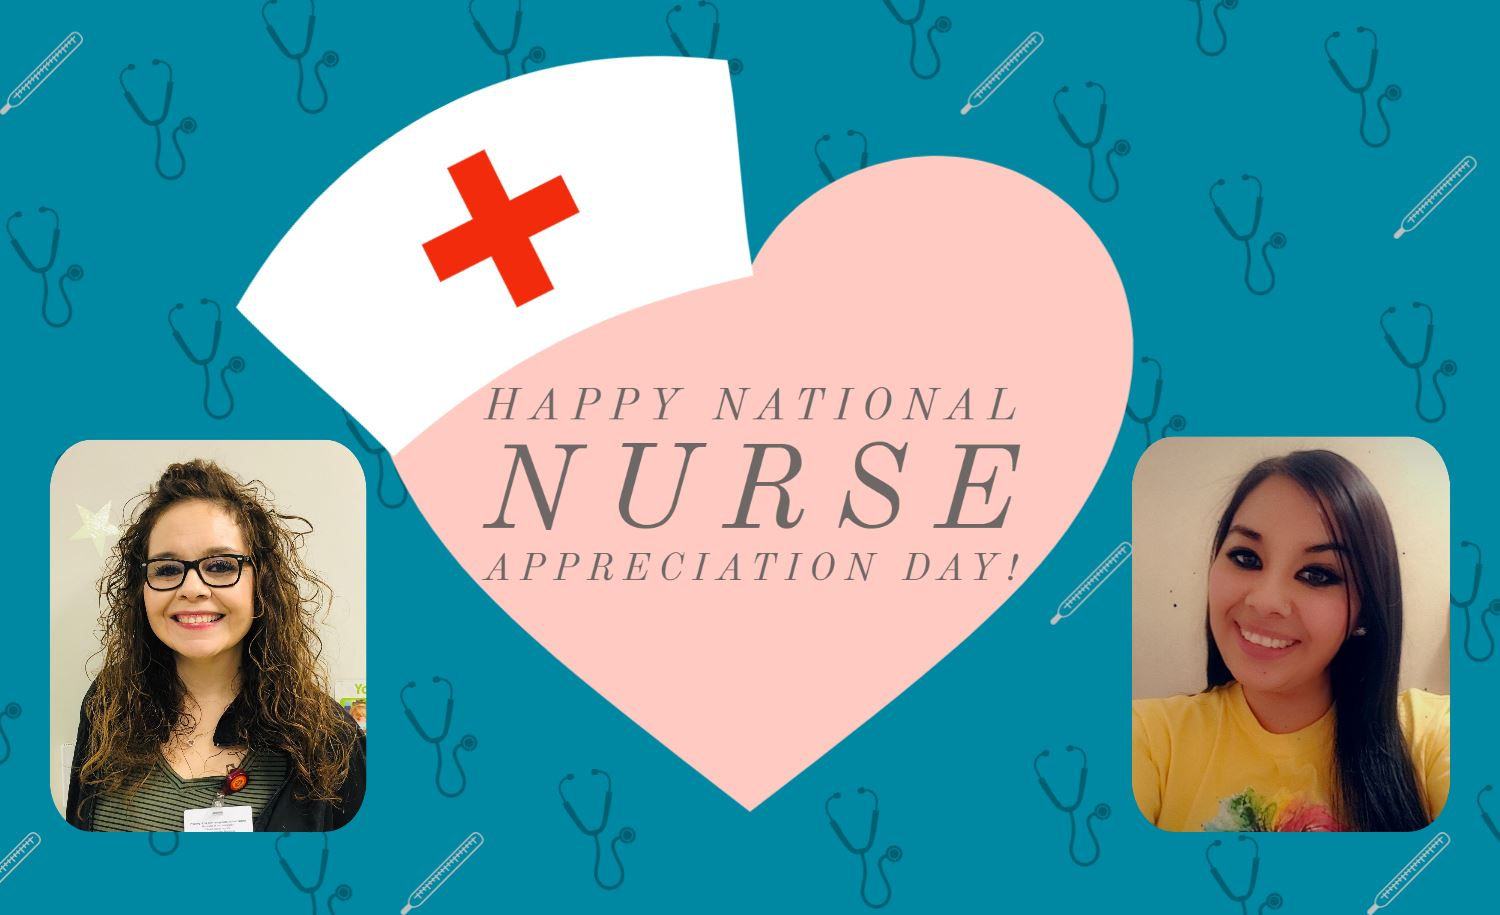 Happy National Nurse Appreciation Day!